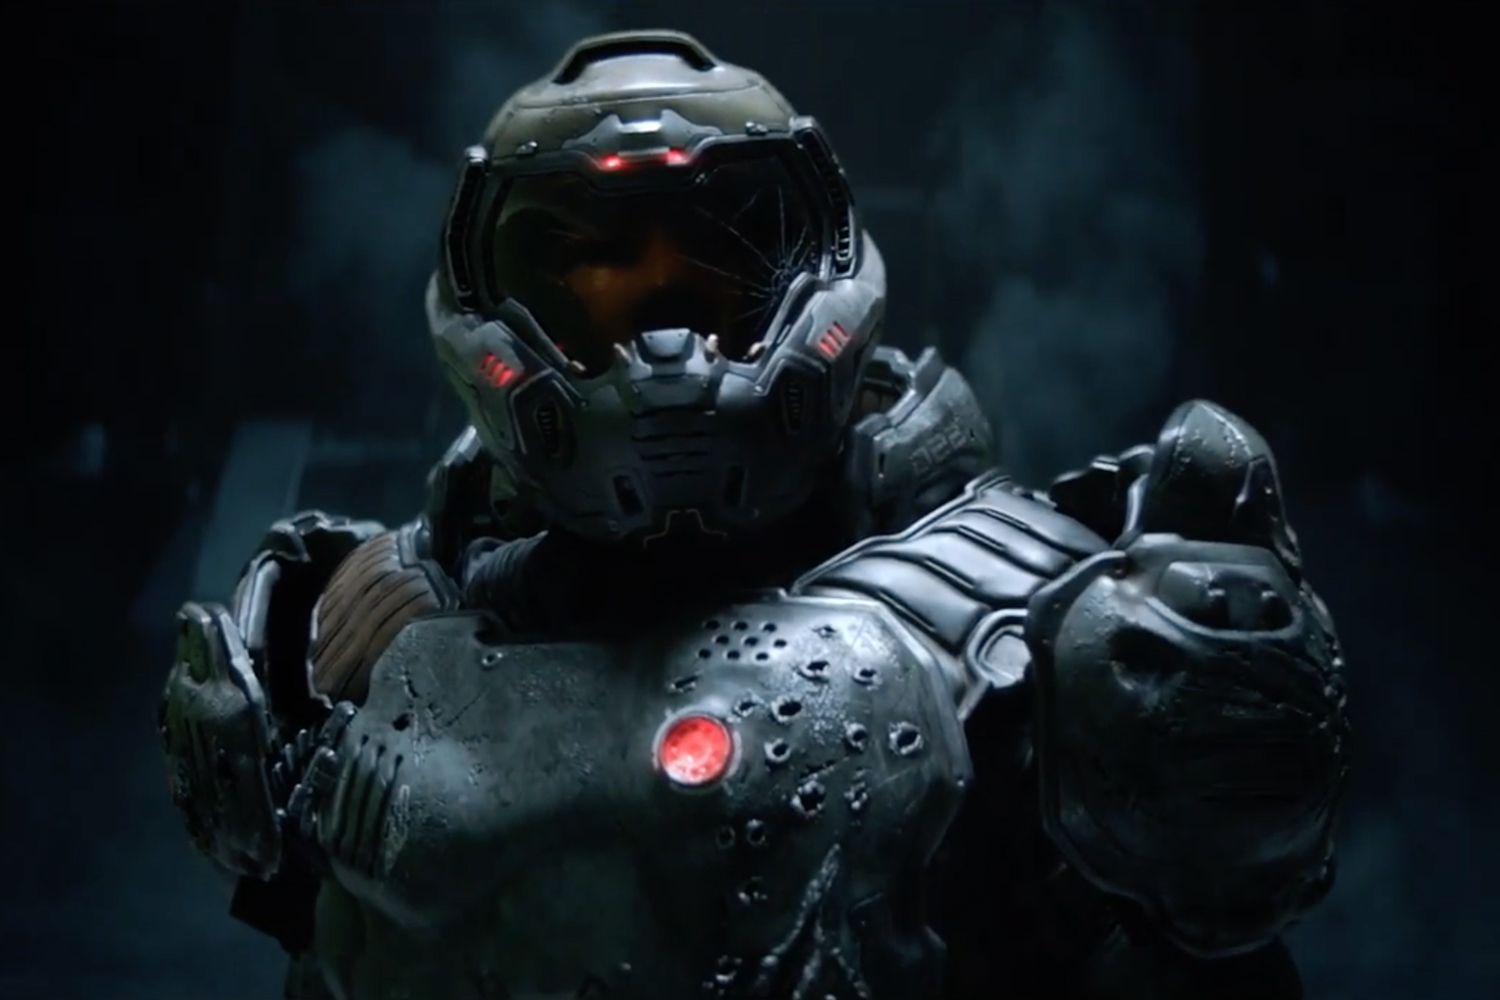 The Marine Fights Like Hell in the Latest 'DOOM' Trailer